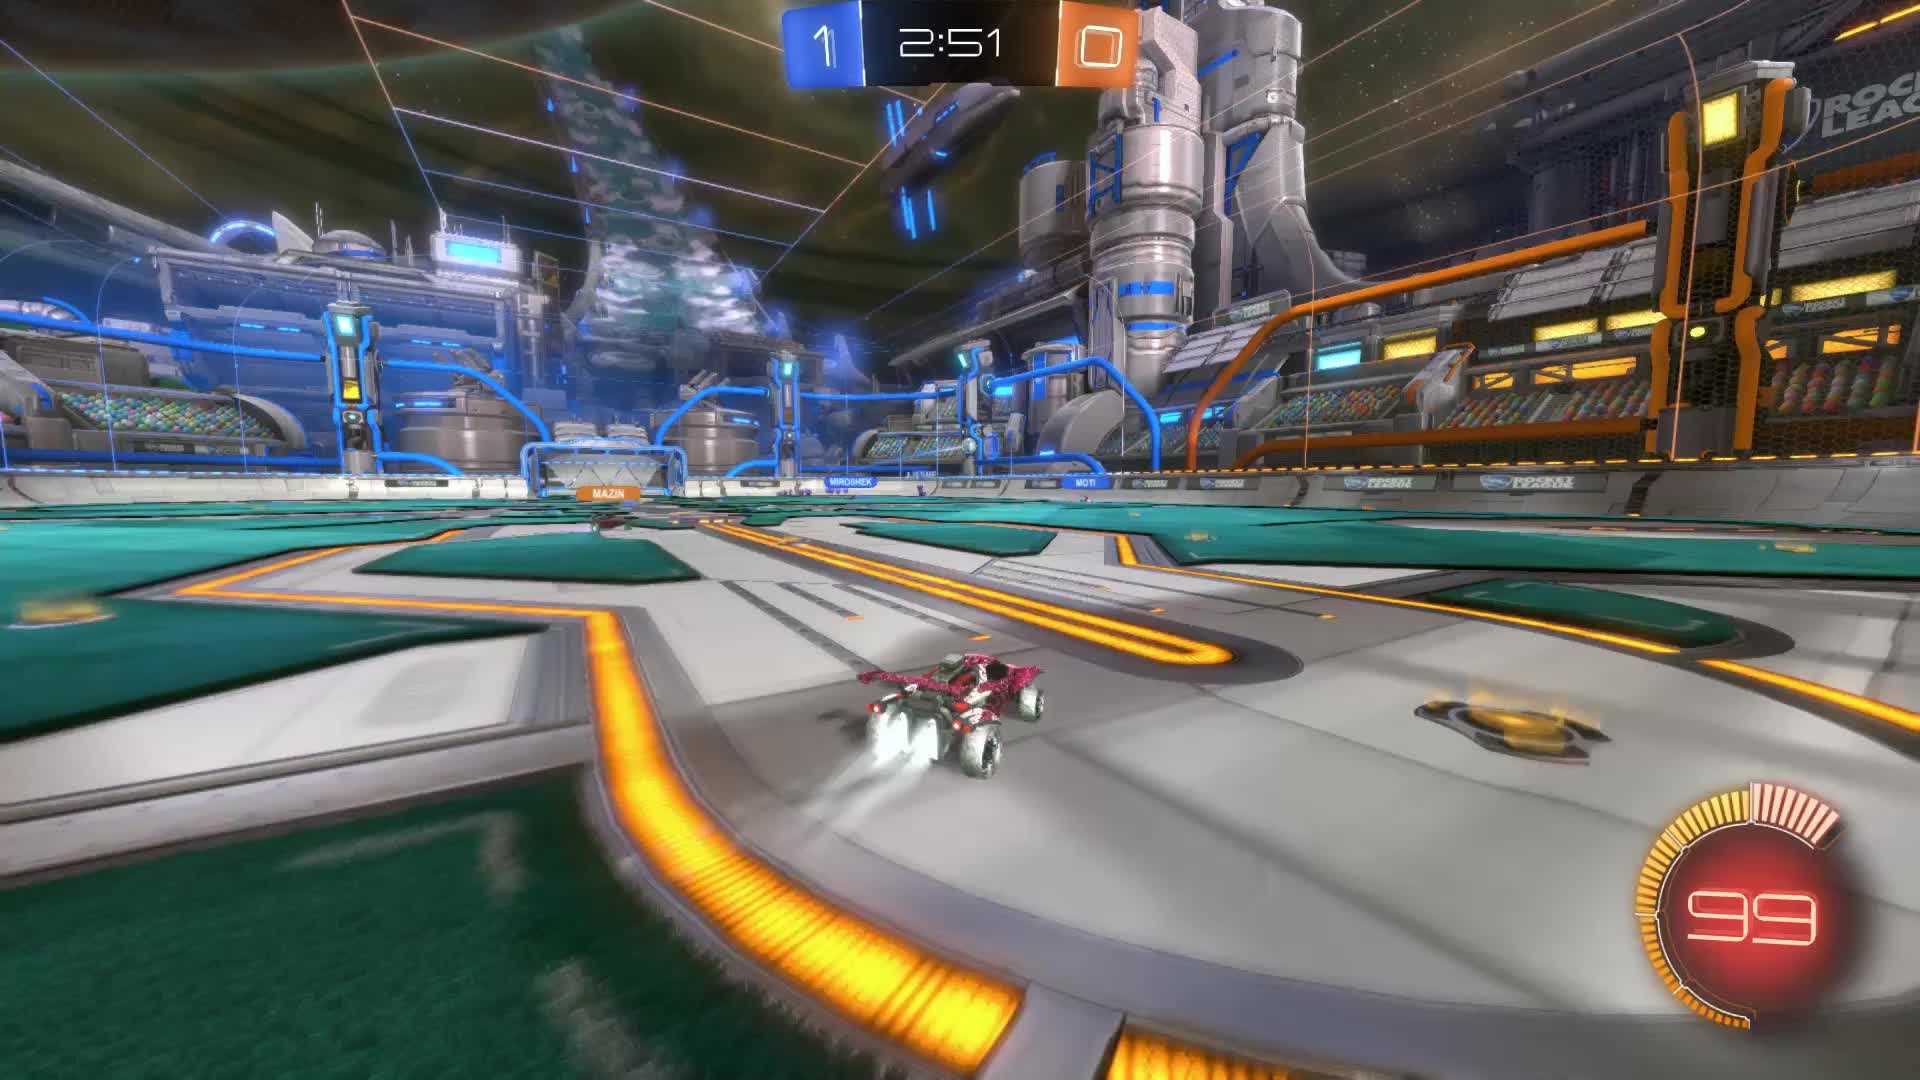 Assist, BatmAal, Gif Your Game, GifYourGame, Rocket League, RocketLeague, Assist 1: BatmAal GIFs